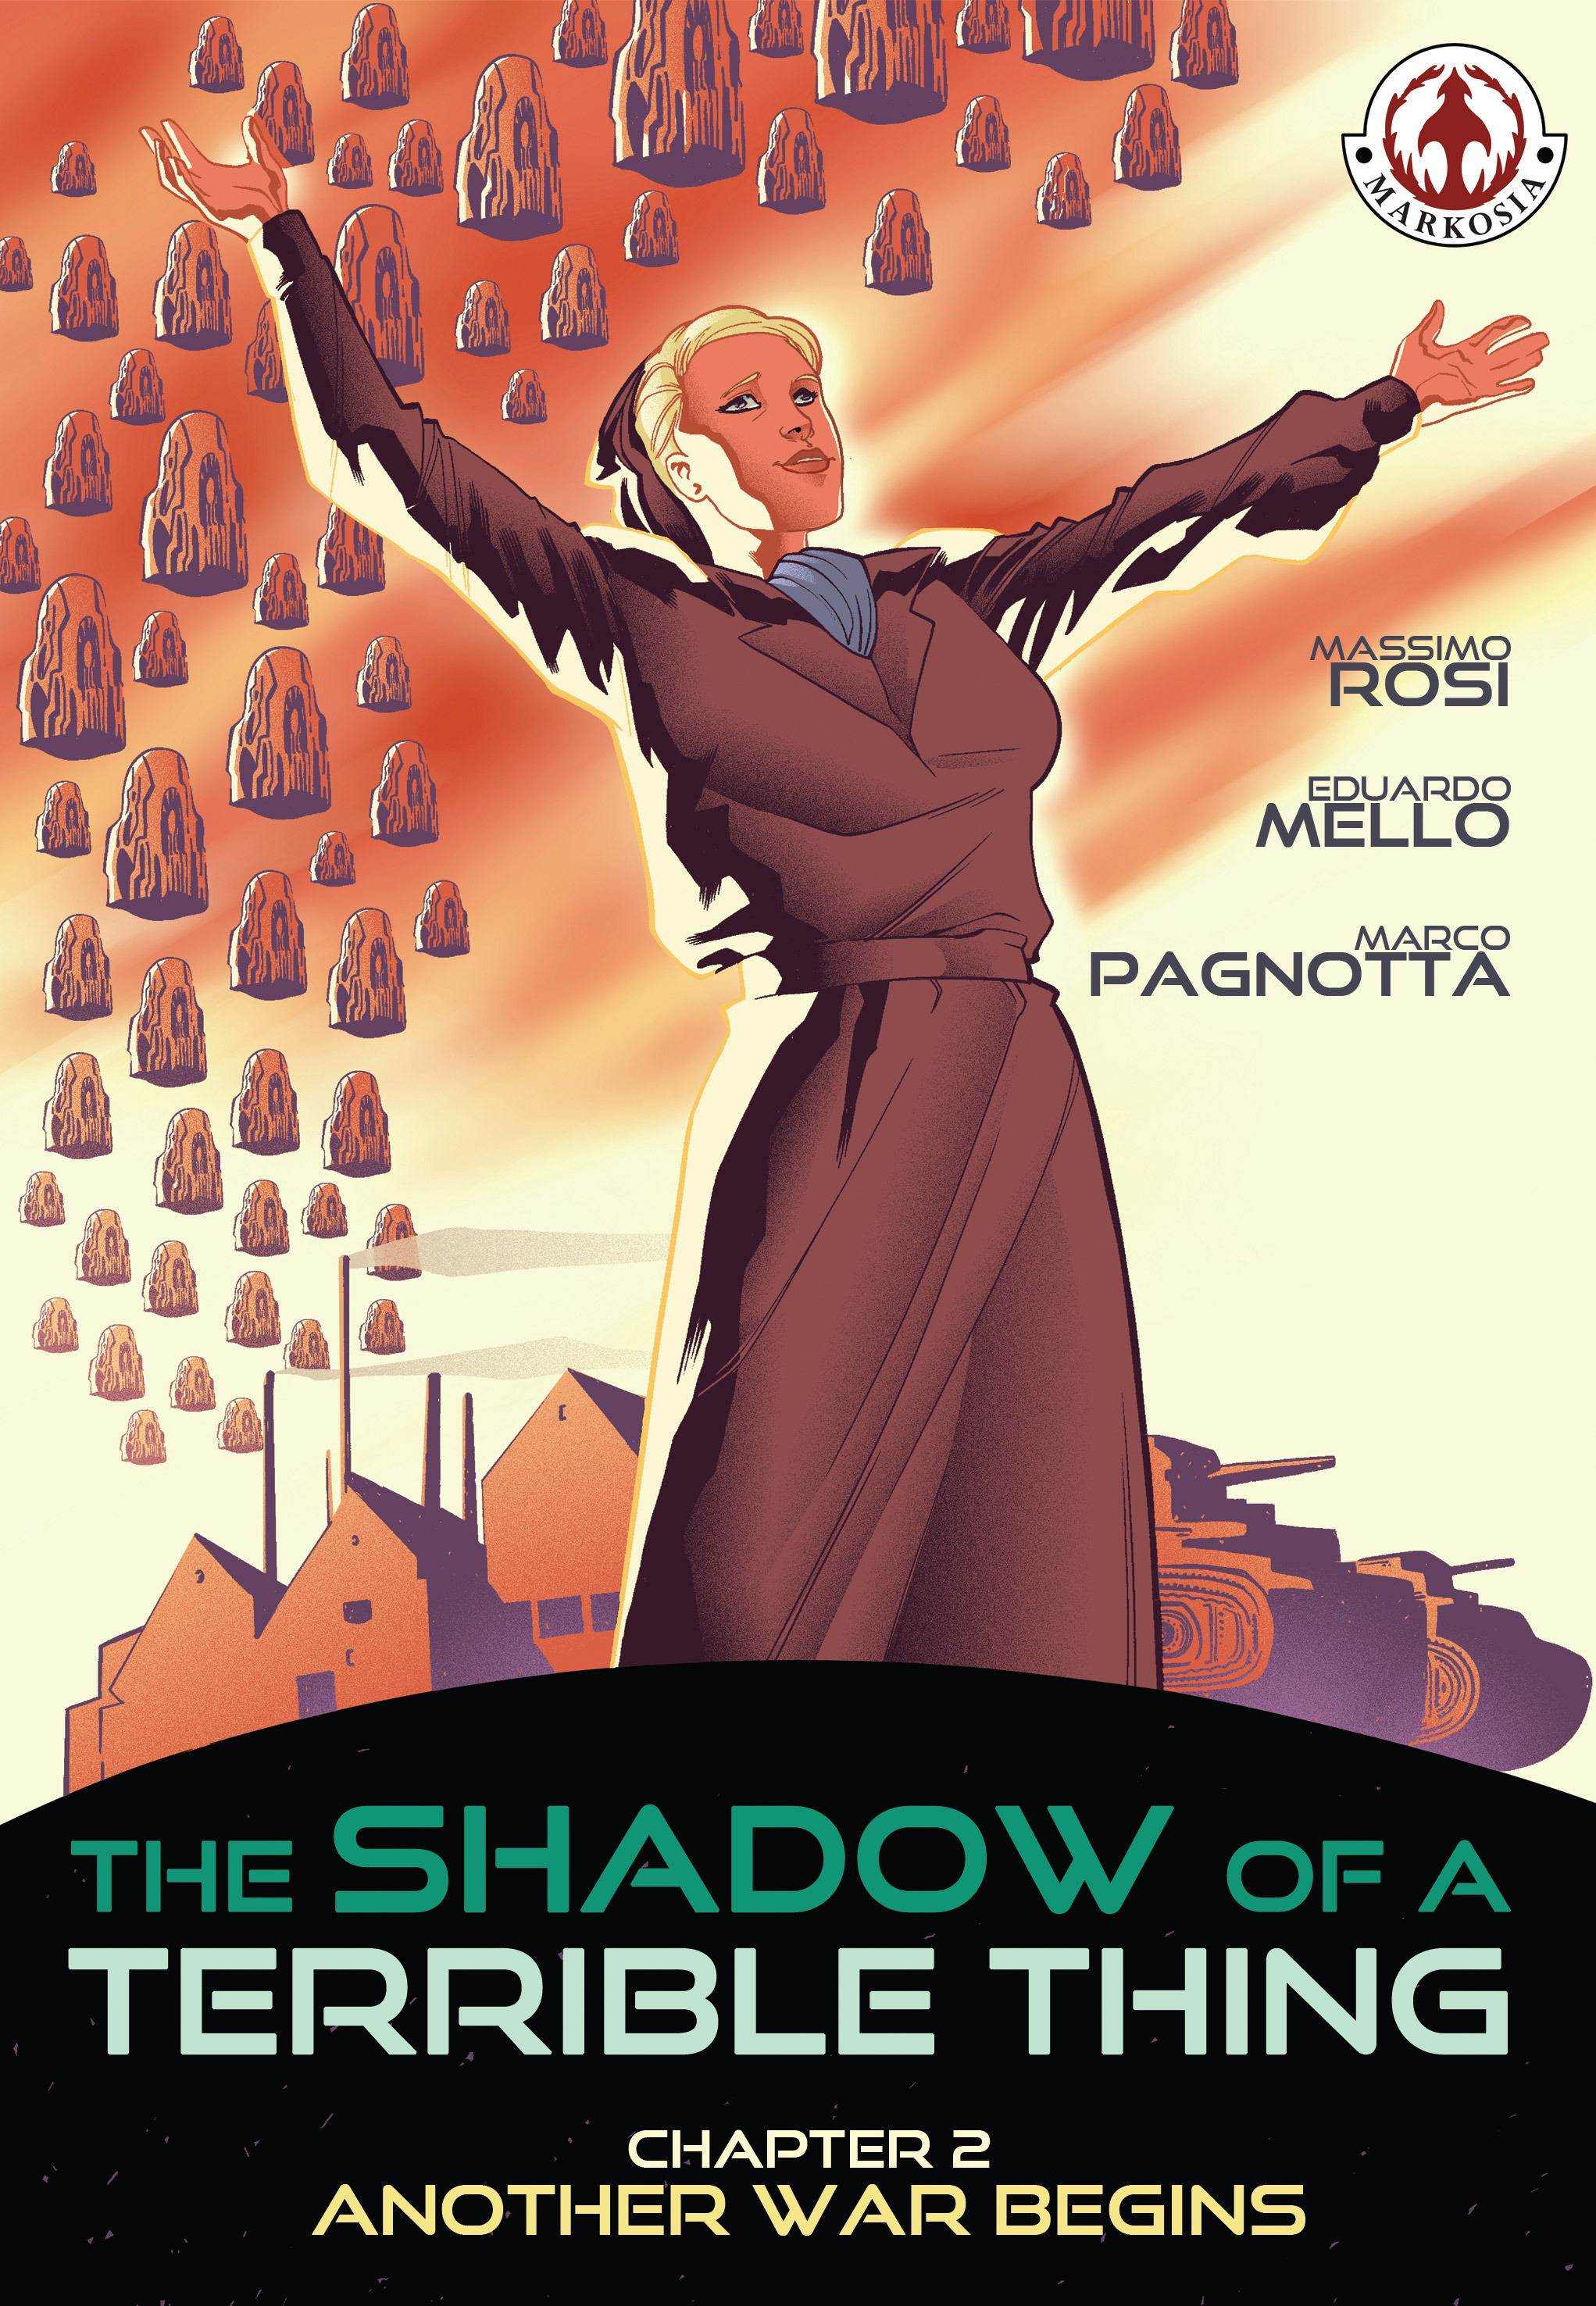 Read online The Shadow of a Terrible Thing comic -  Issue # TPB - 28